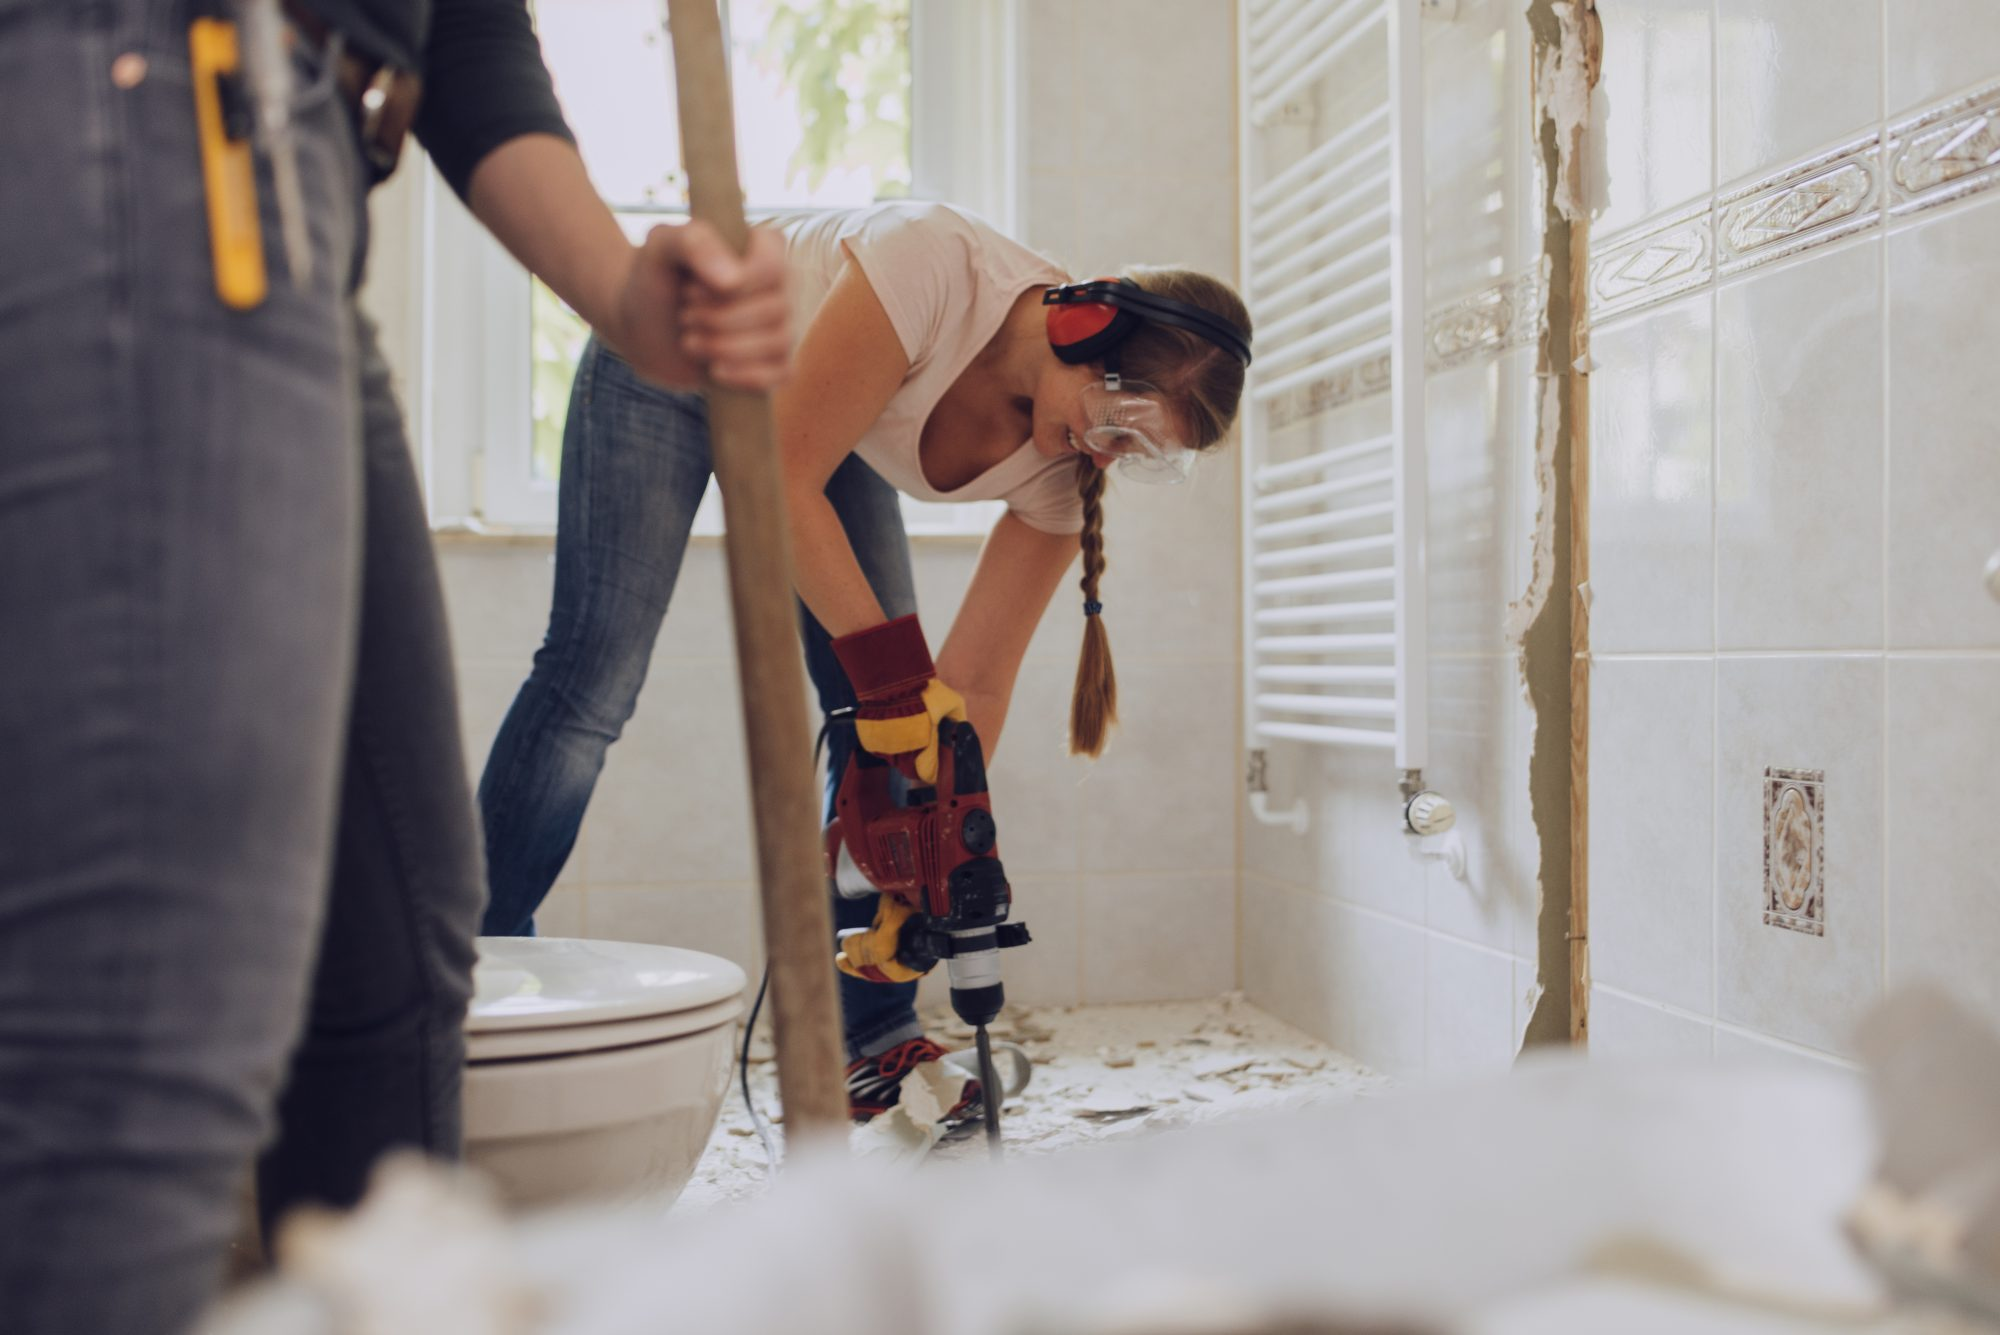 How to Renovate Your Home for Under $10,000, According to Experts